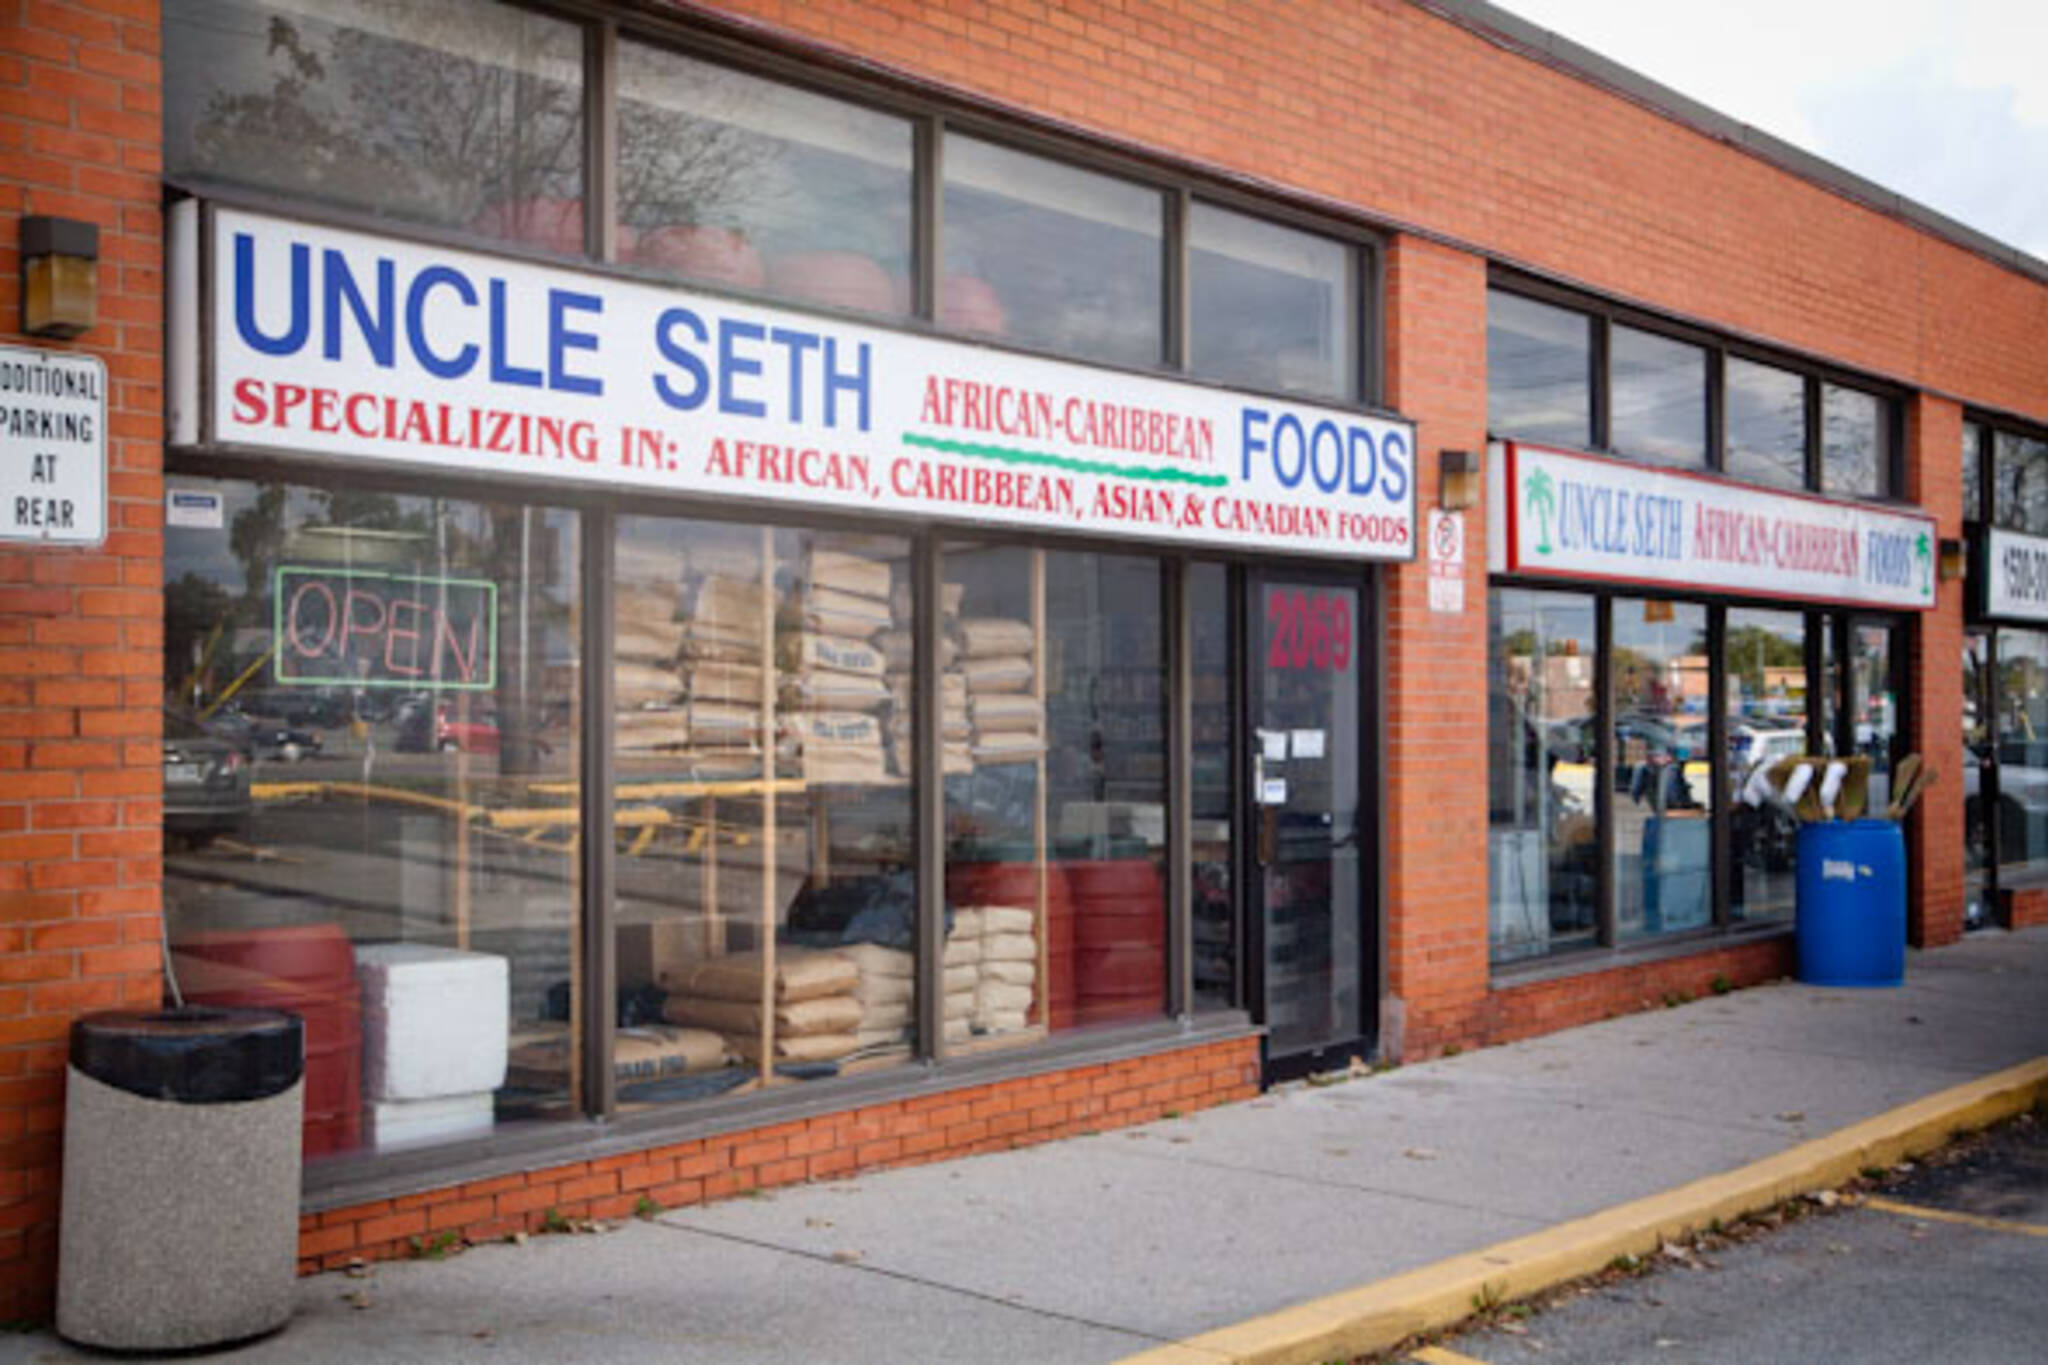 Uncle Seth African Caribbean Foods